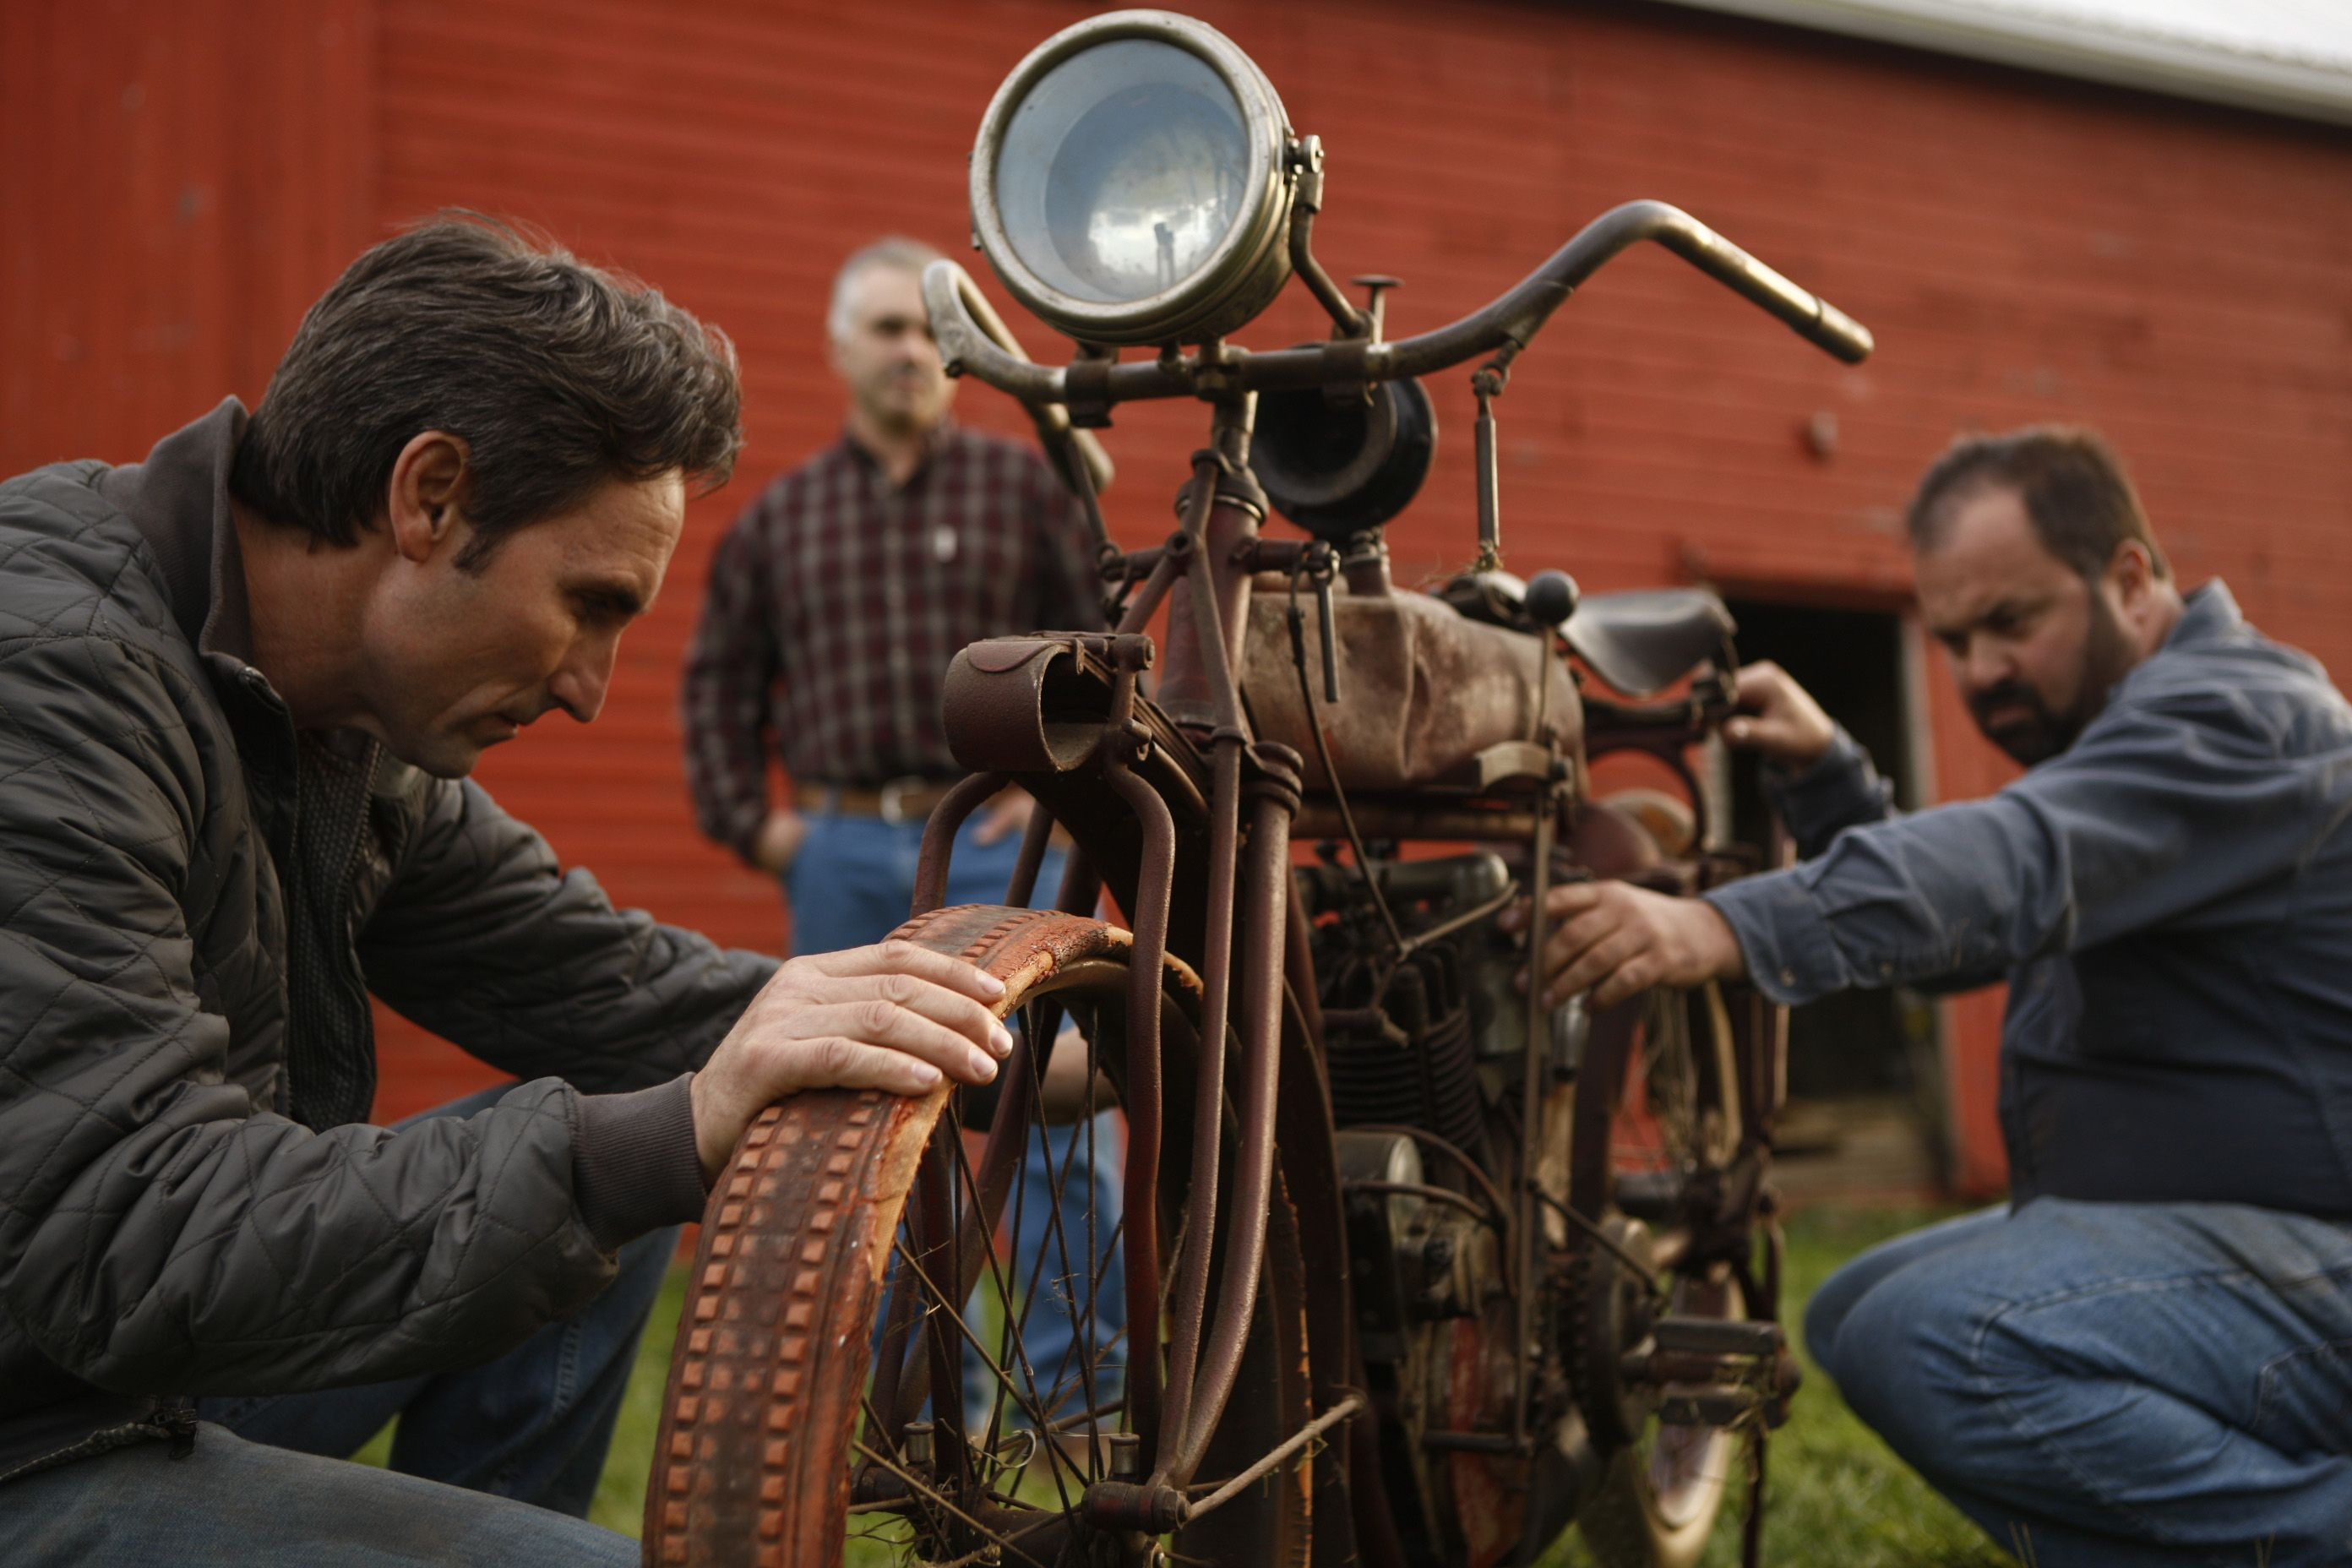 Frank and I like to get our hands dirty with an old rusty bike